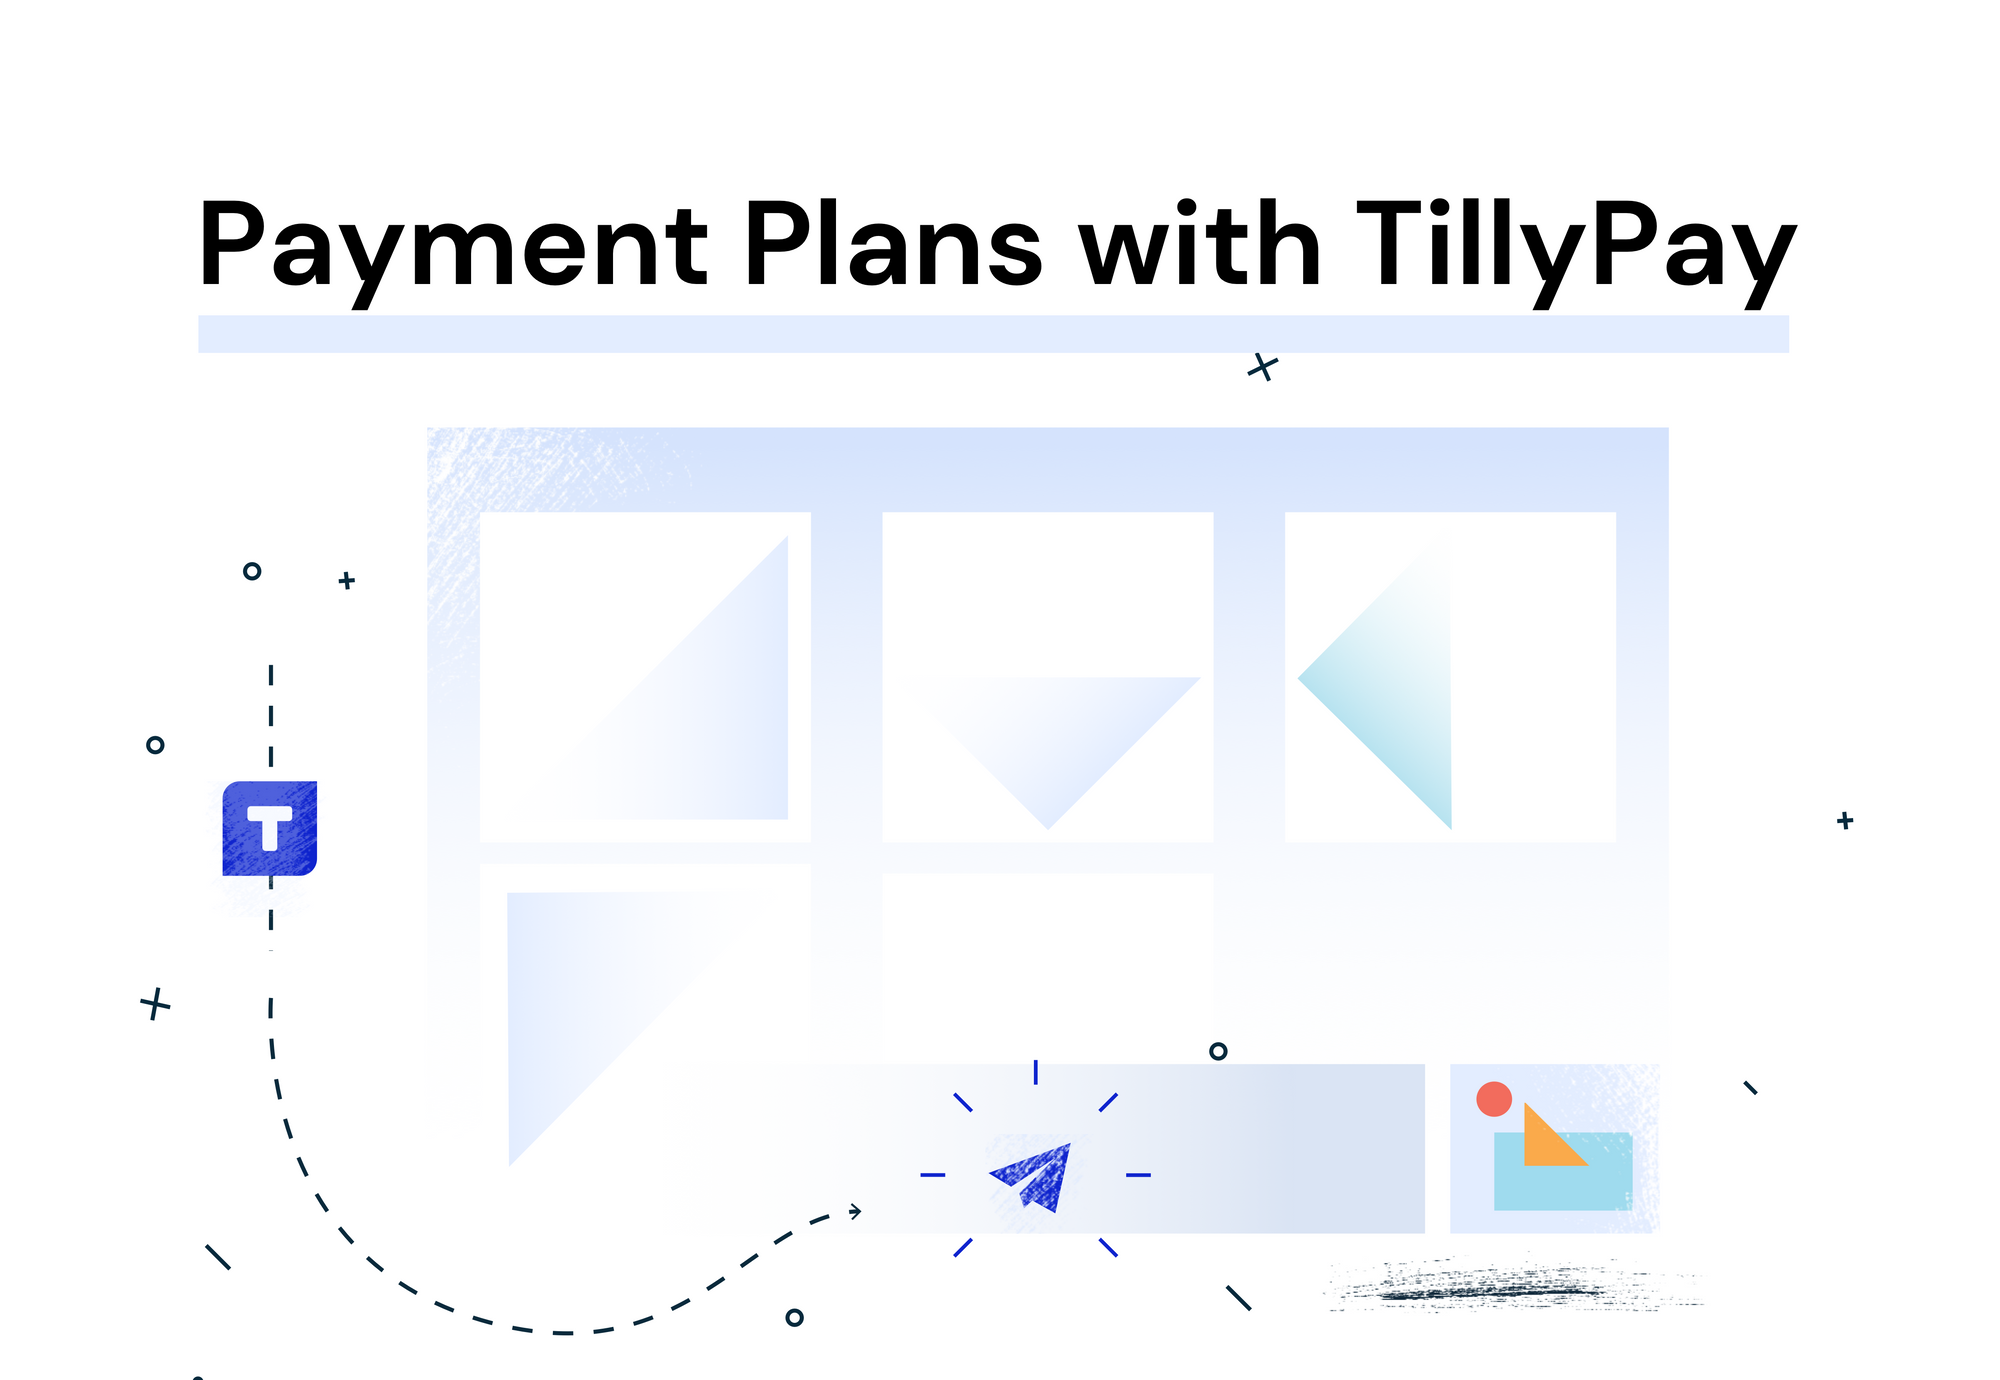 How to use Partial Payment Plans